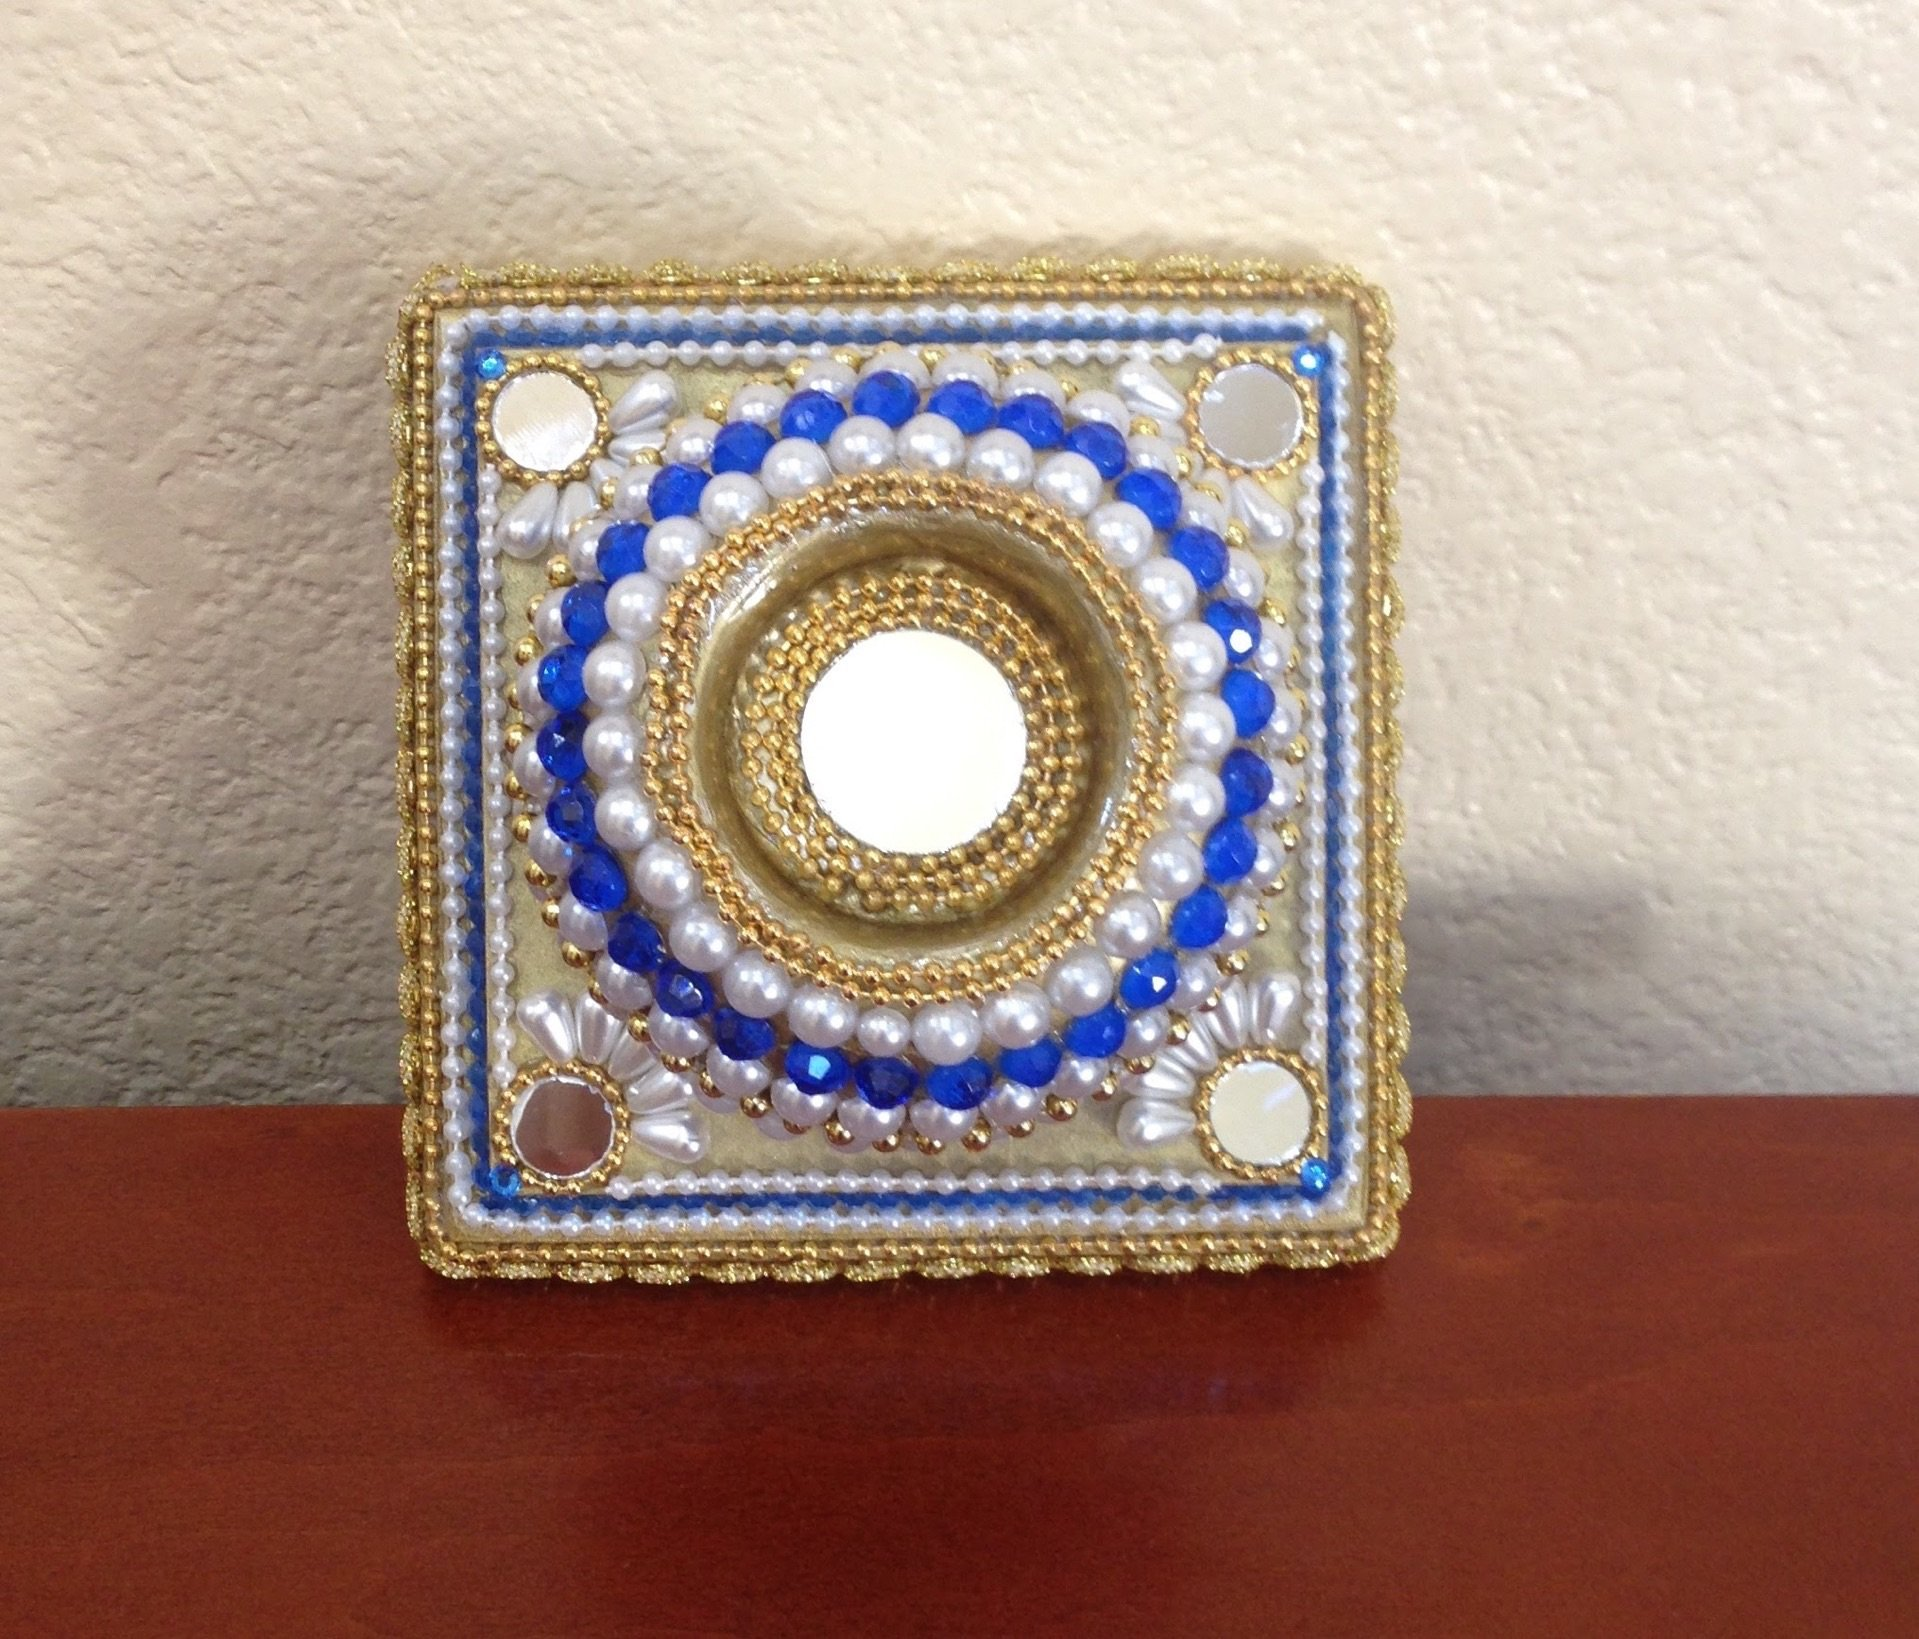 Home Decor Livermore: Handcrafted Home Decor And Gift Items